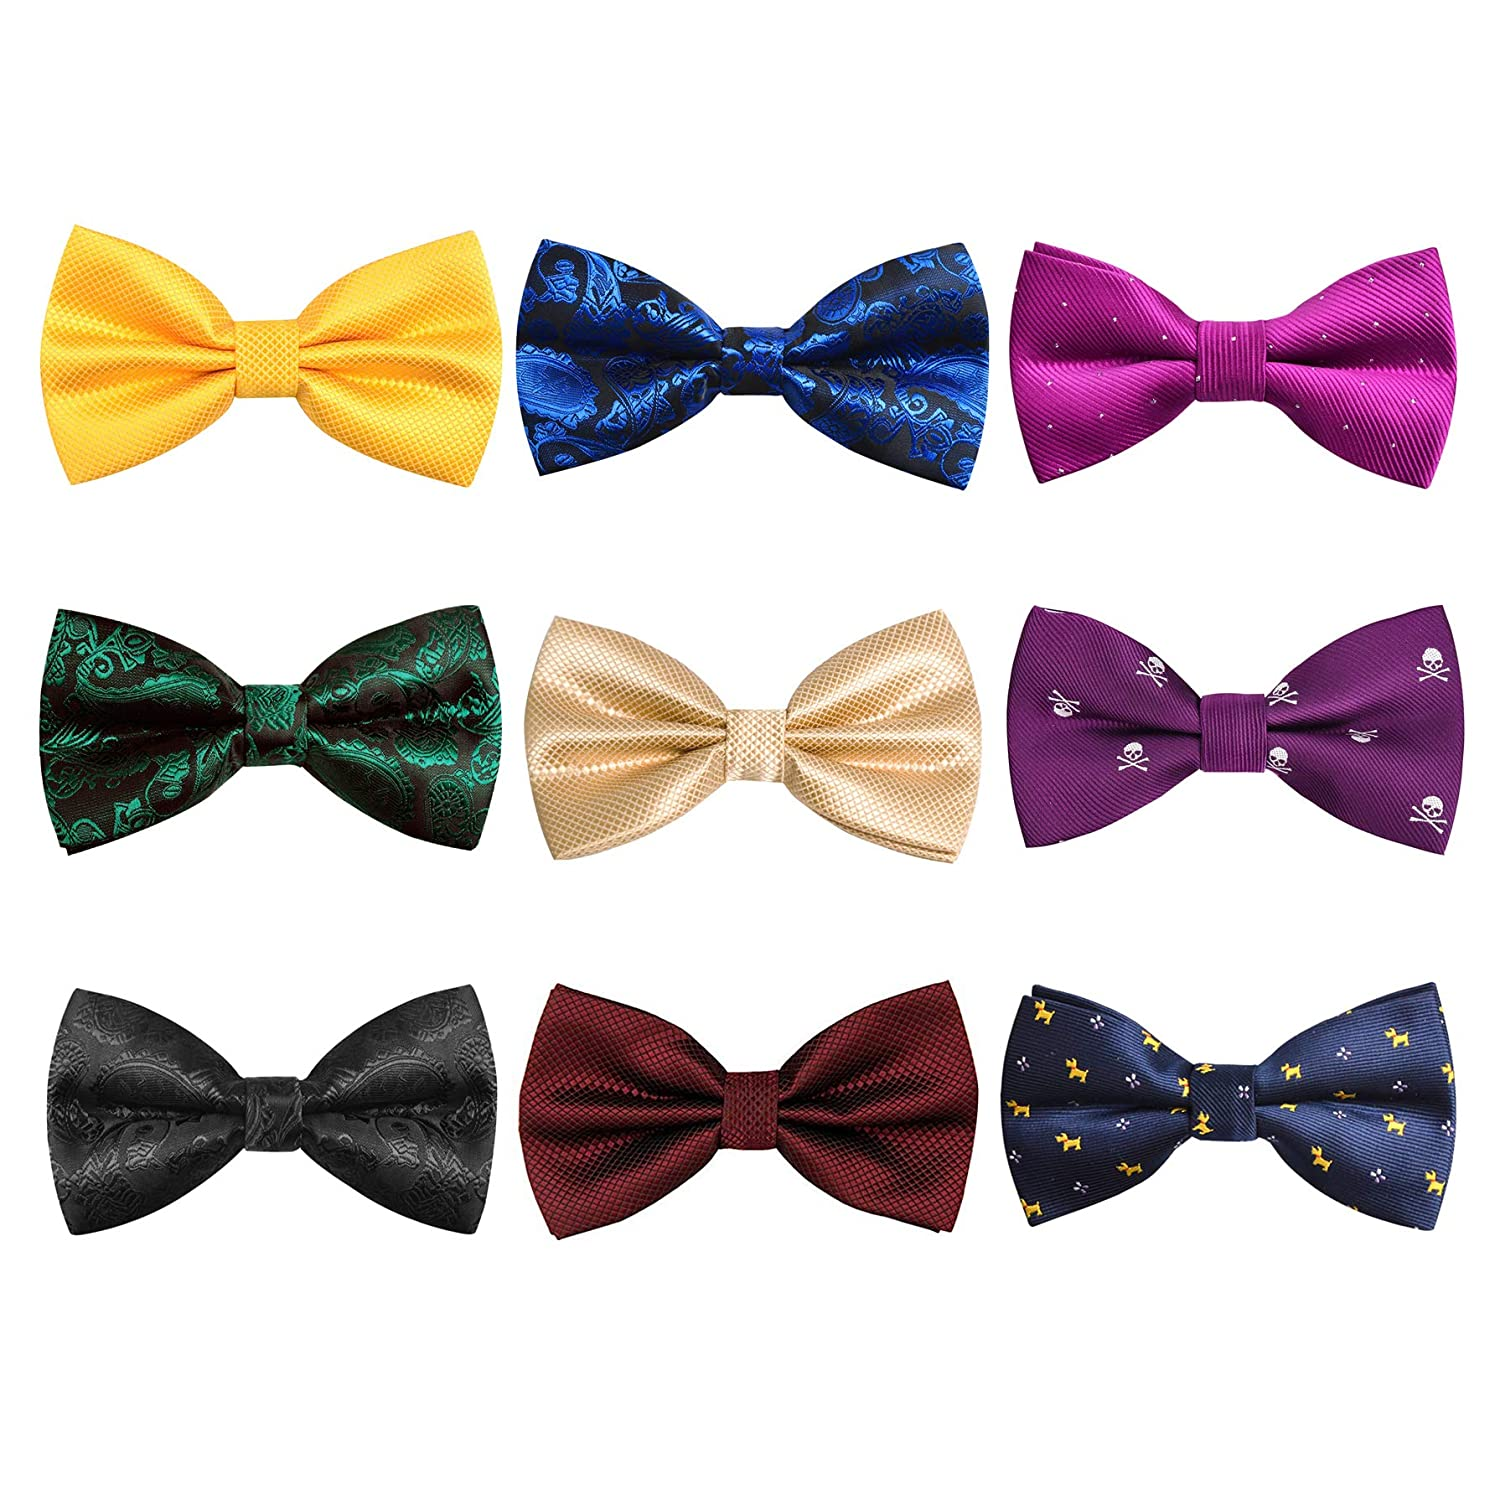 Pre-tied Tuxedo Adjustable Neck Bowtie for Wedding Party packs of 8 Set 5